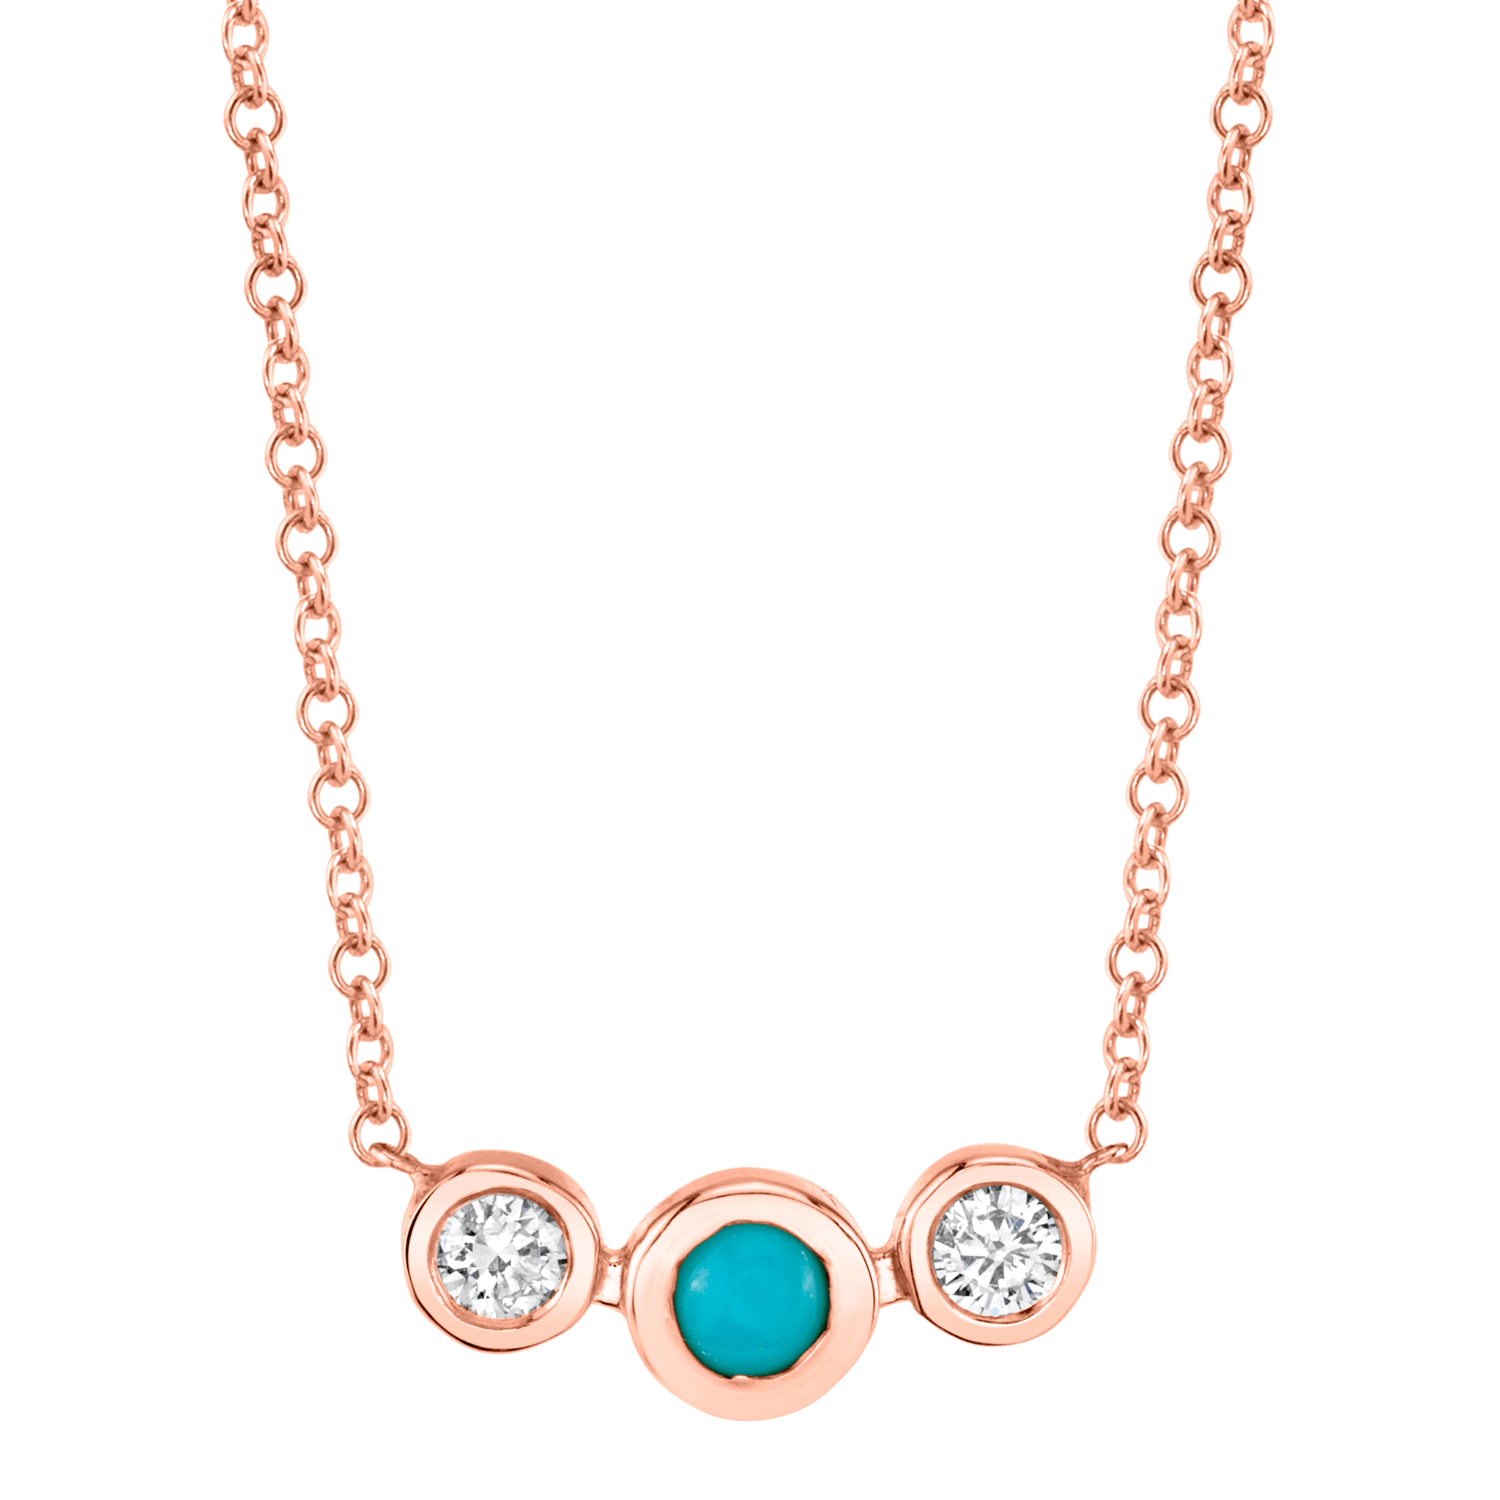 Turquoise Diamond Bezel Necklace